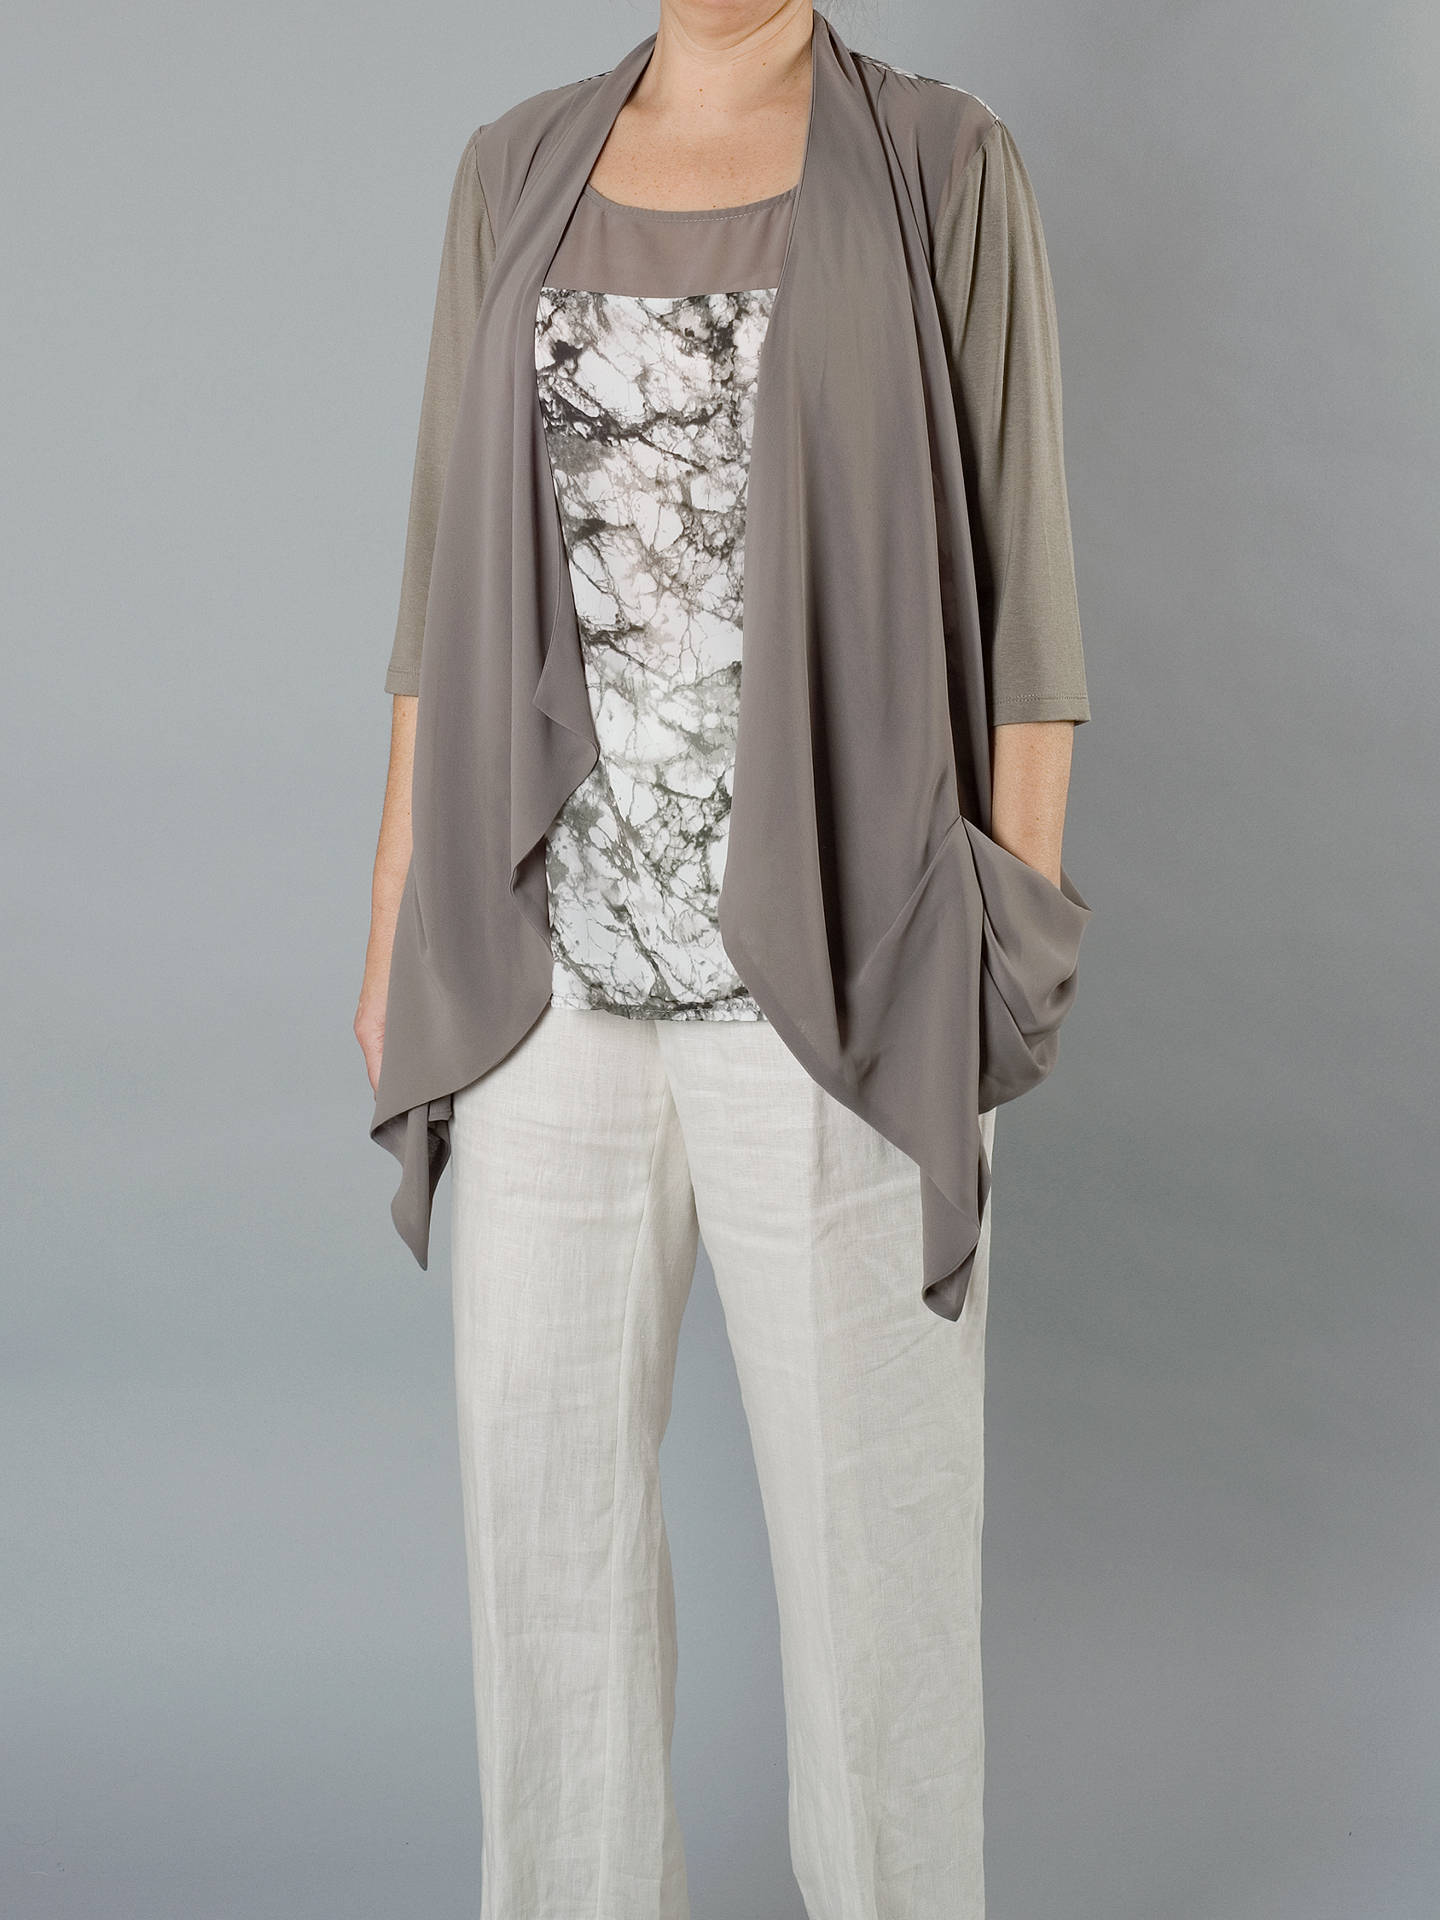 Buy Chesca Chiffon Jersey Trim Shrug, Khaki, 12 Online at johnlewis.com